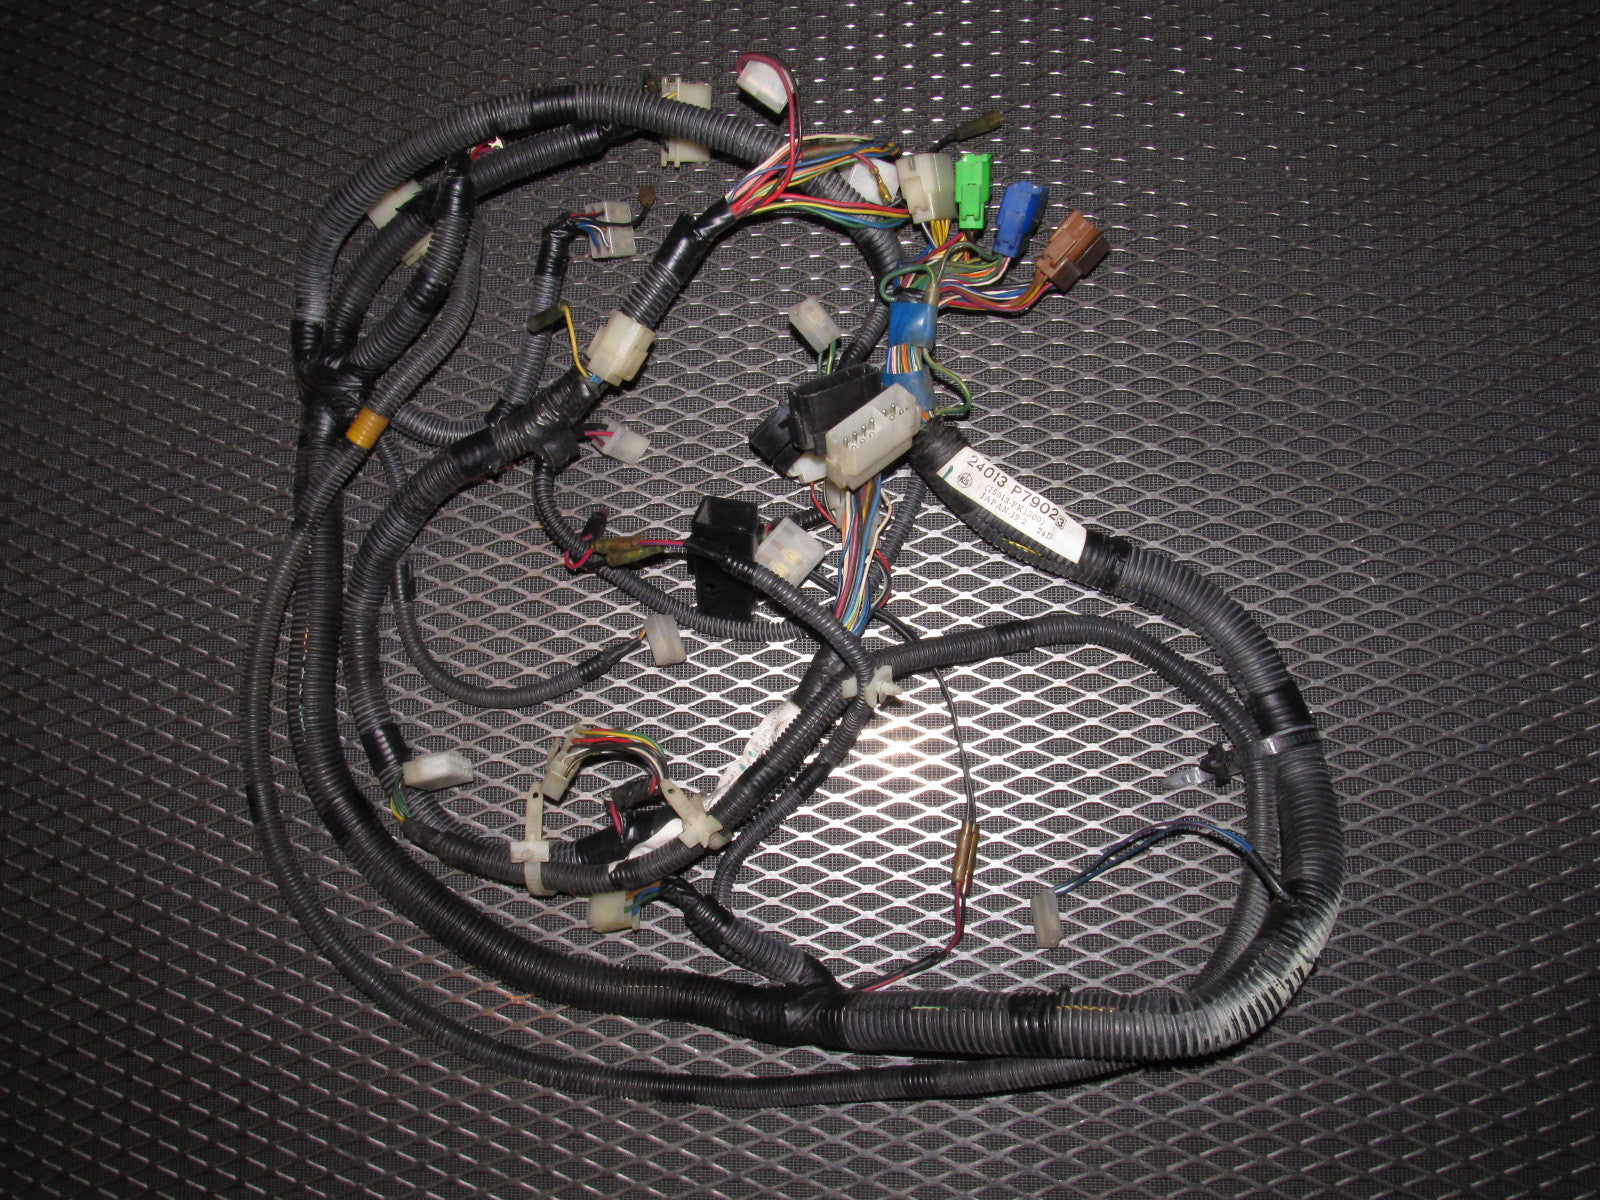 81 82 83 datsun 280zx oem l28e a/t engine wiring harness set